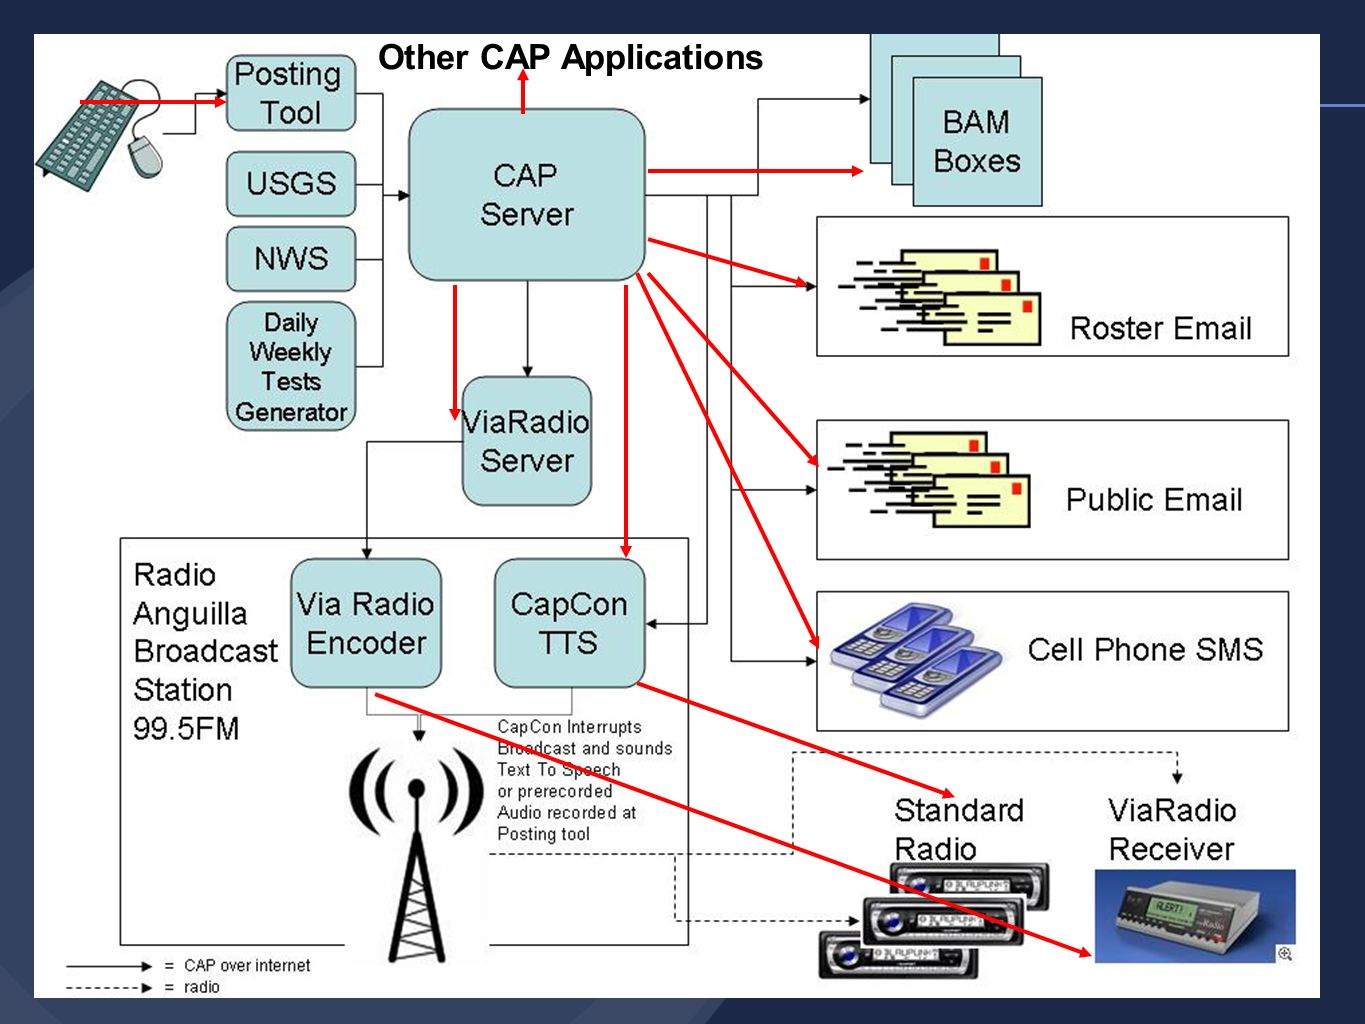 Other CAP Applications